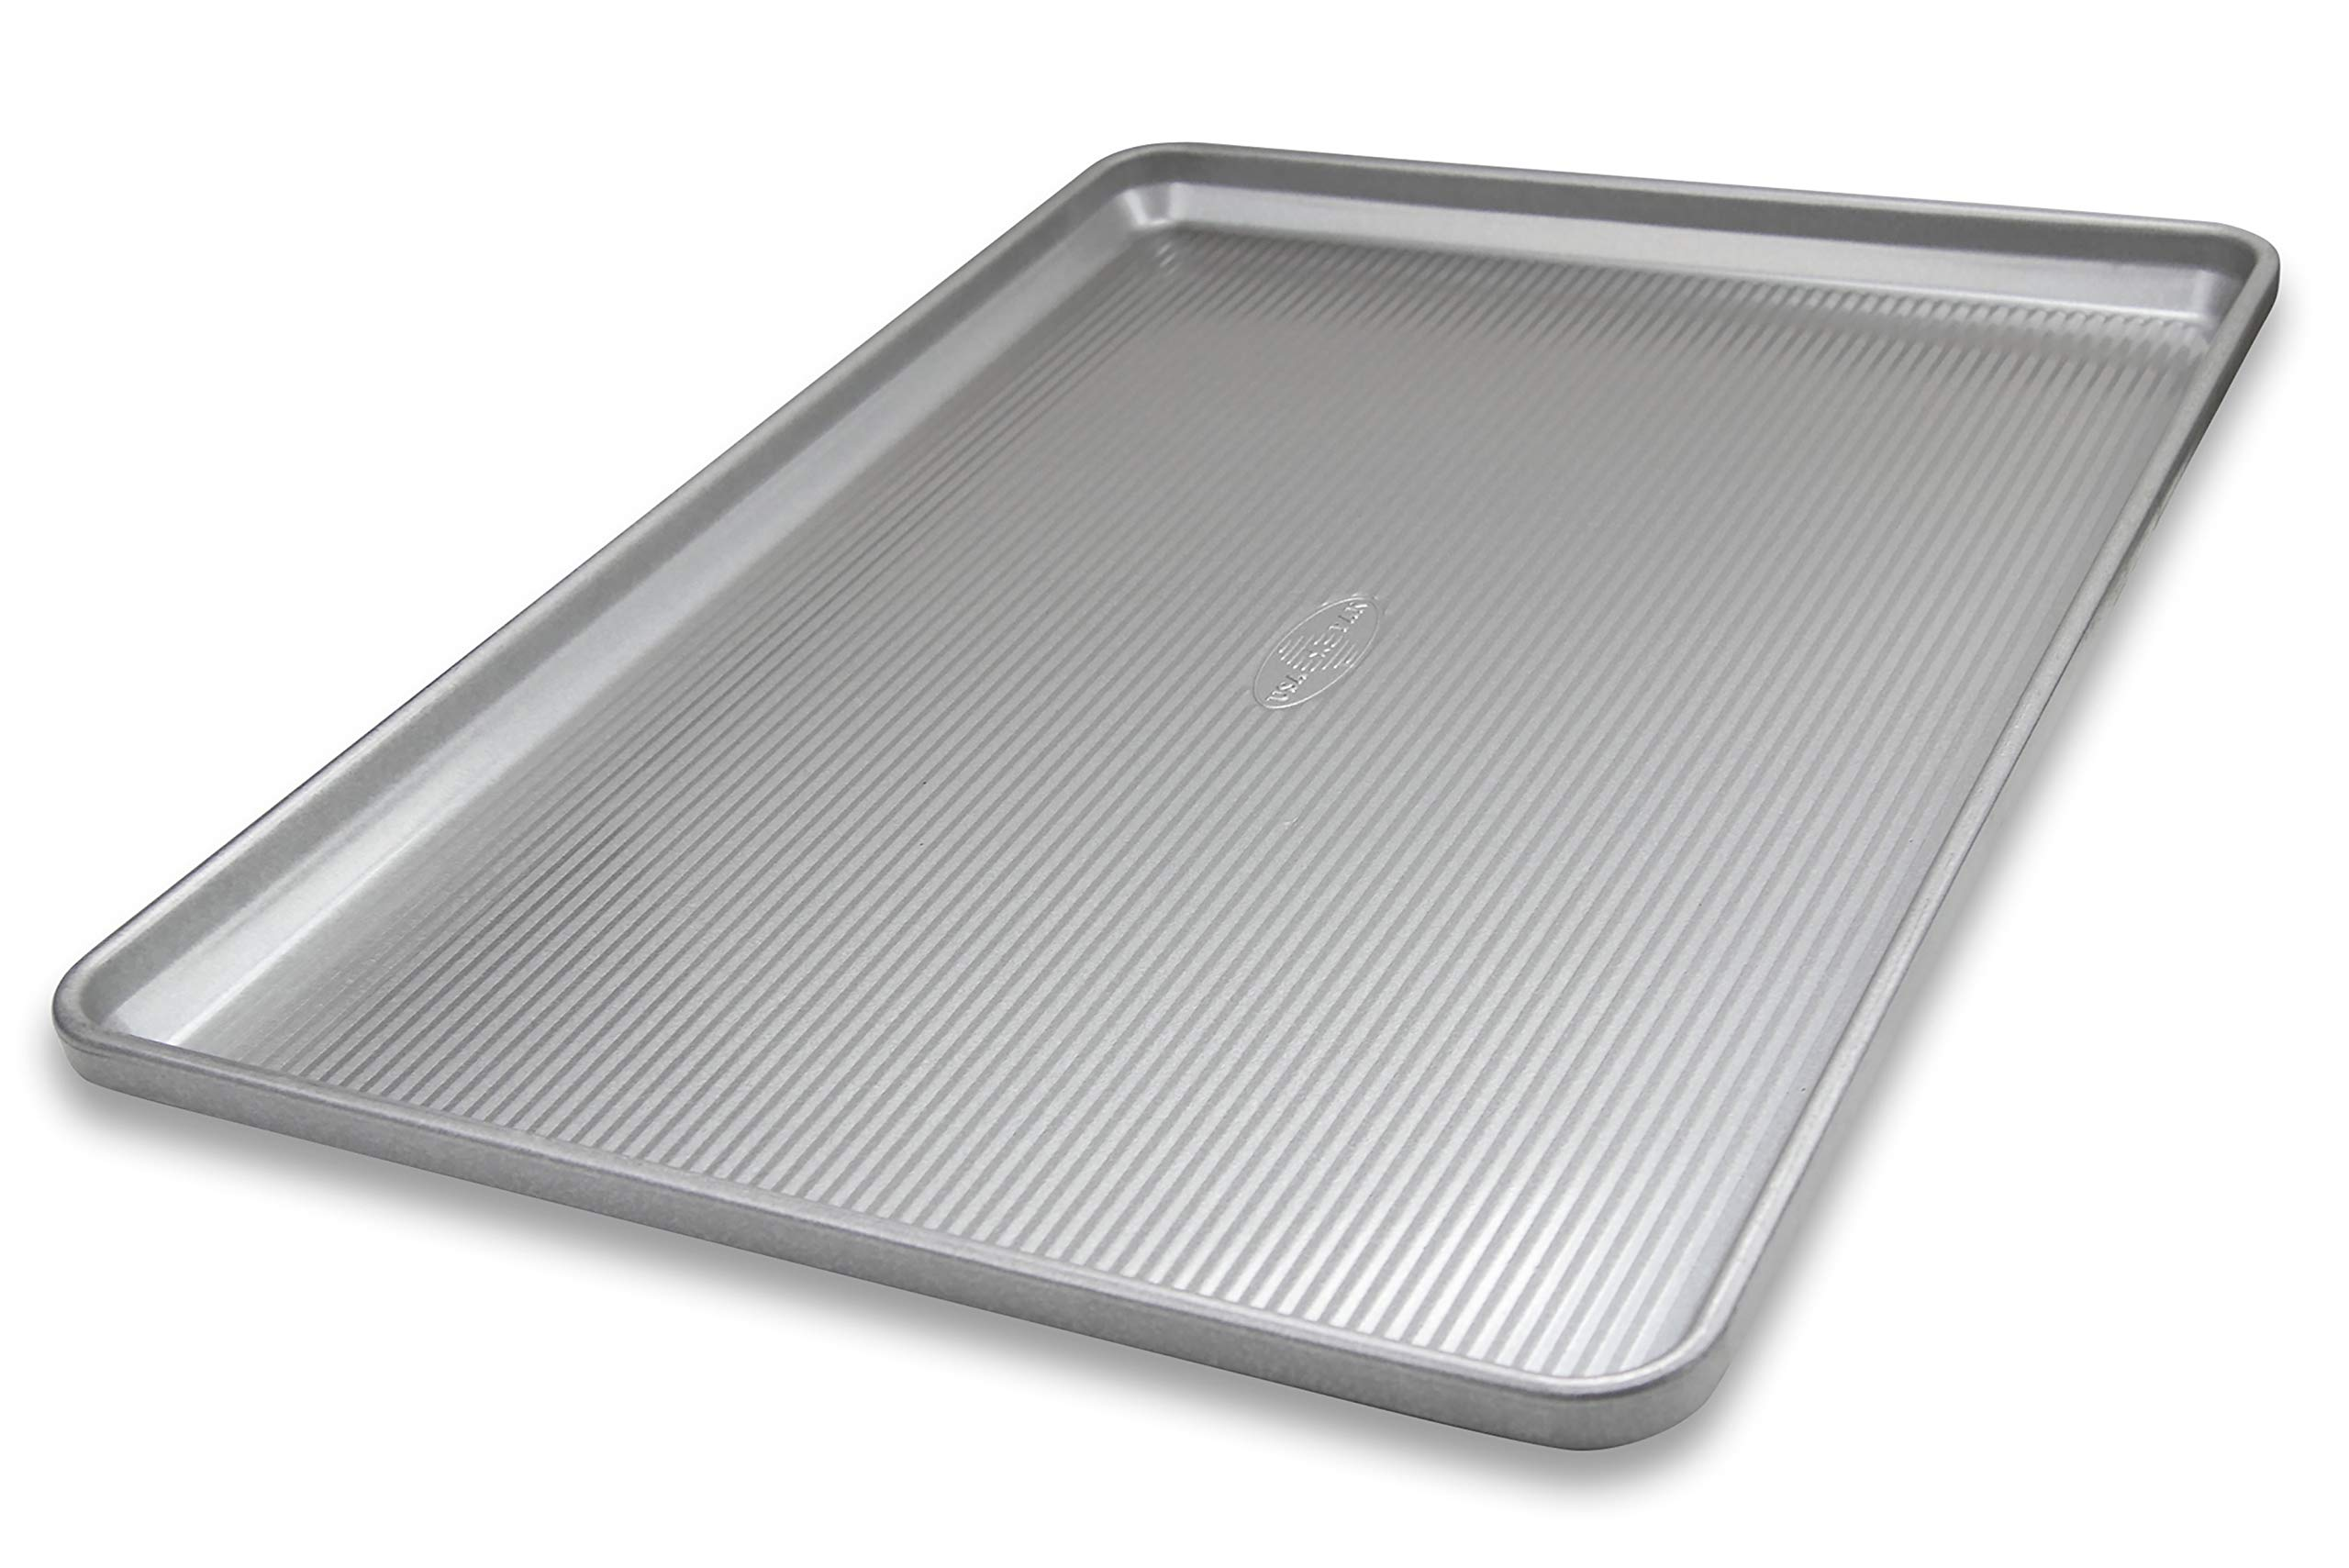 USA Pan 1056HS-1 Bakeware Heavy Duty Nonstick Extra Large Sheet